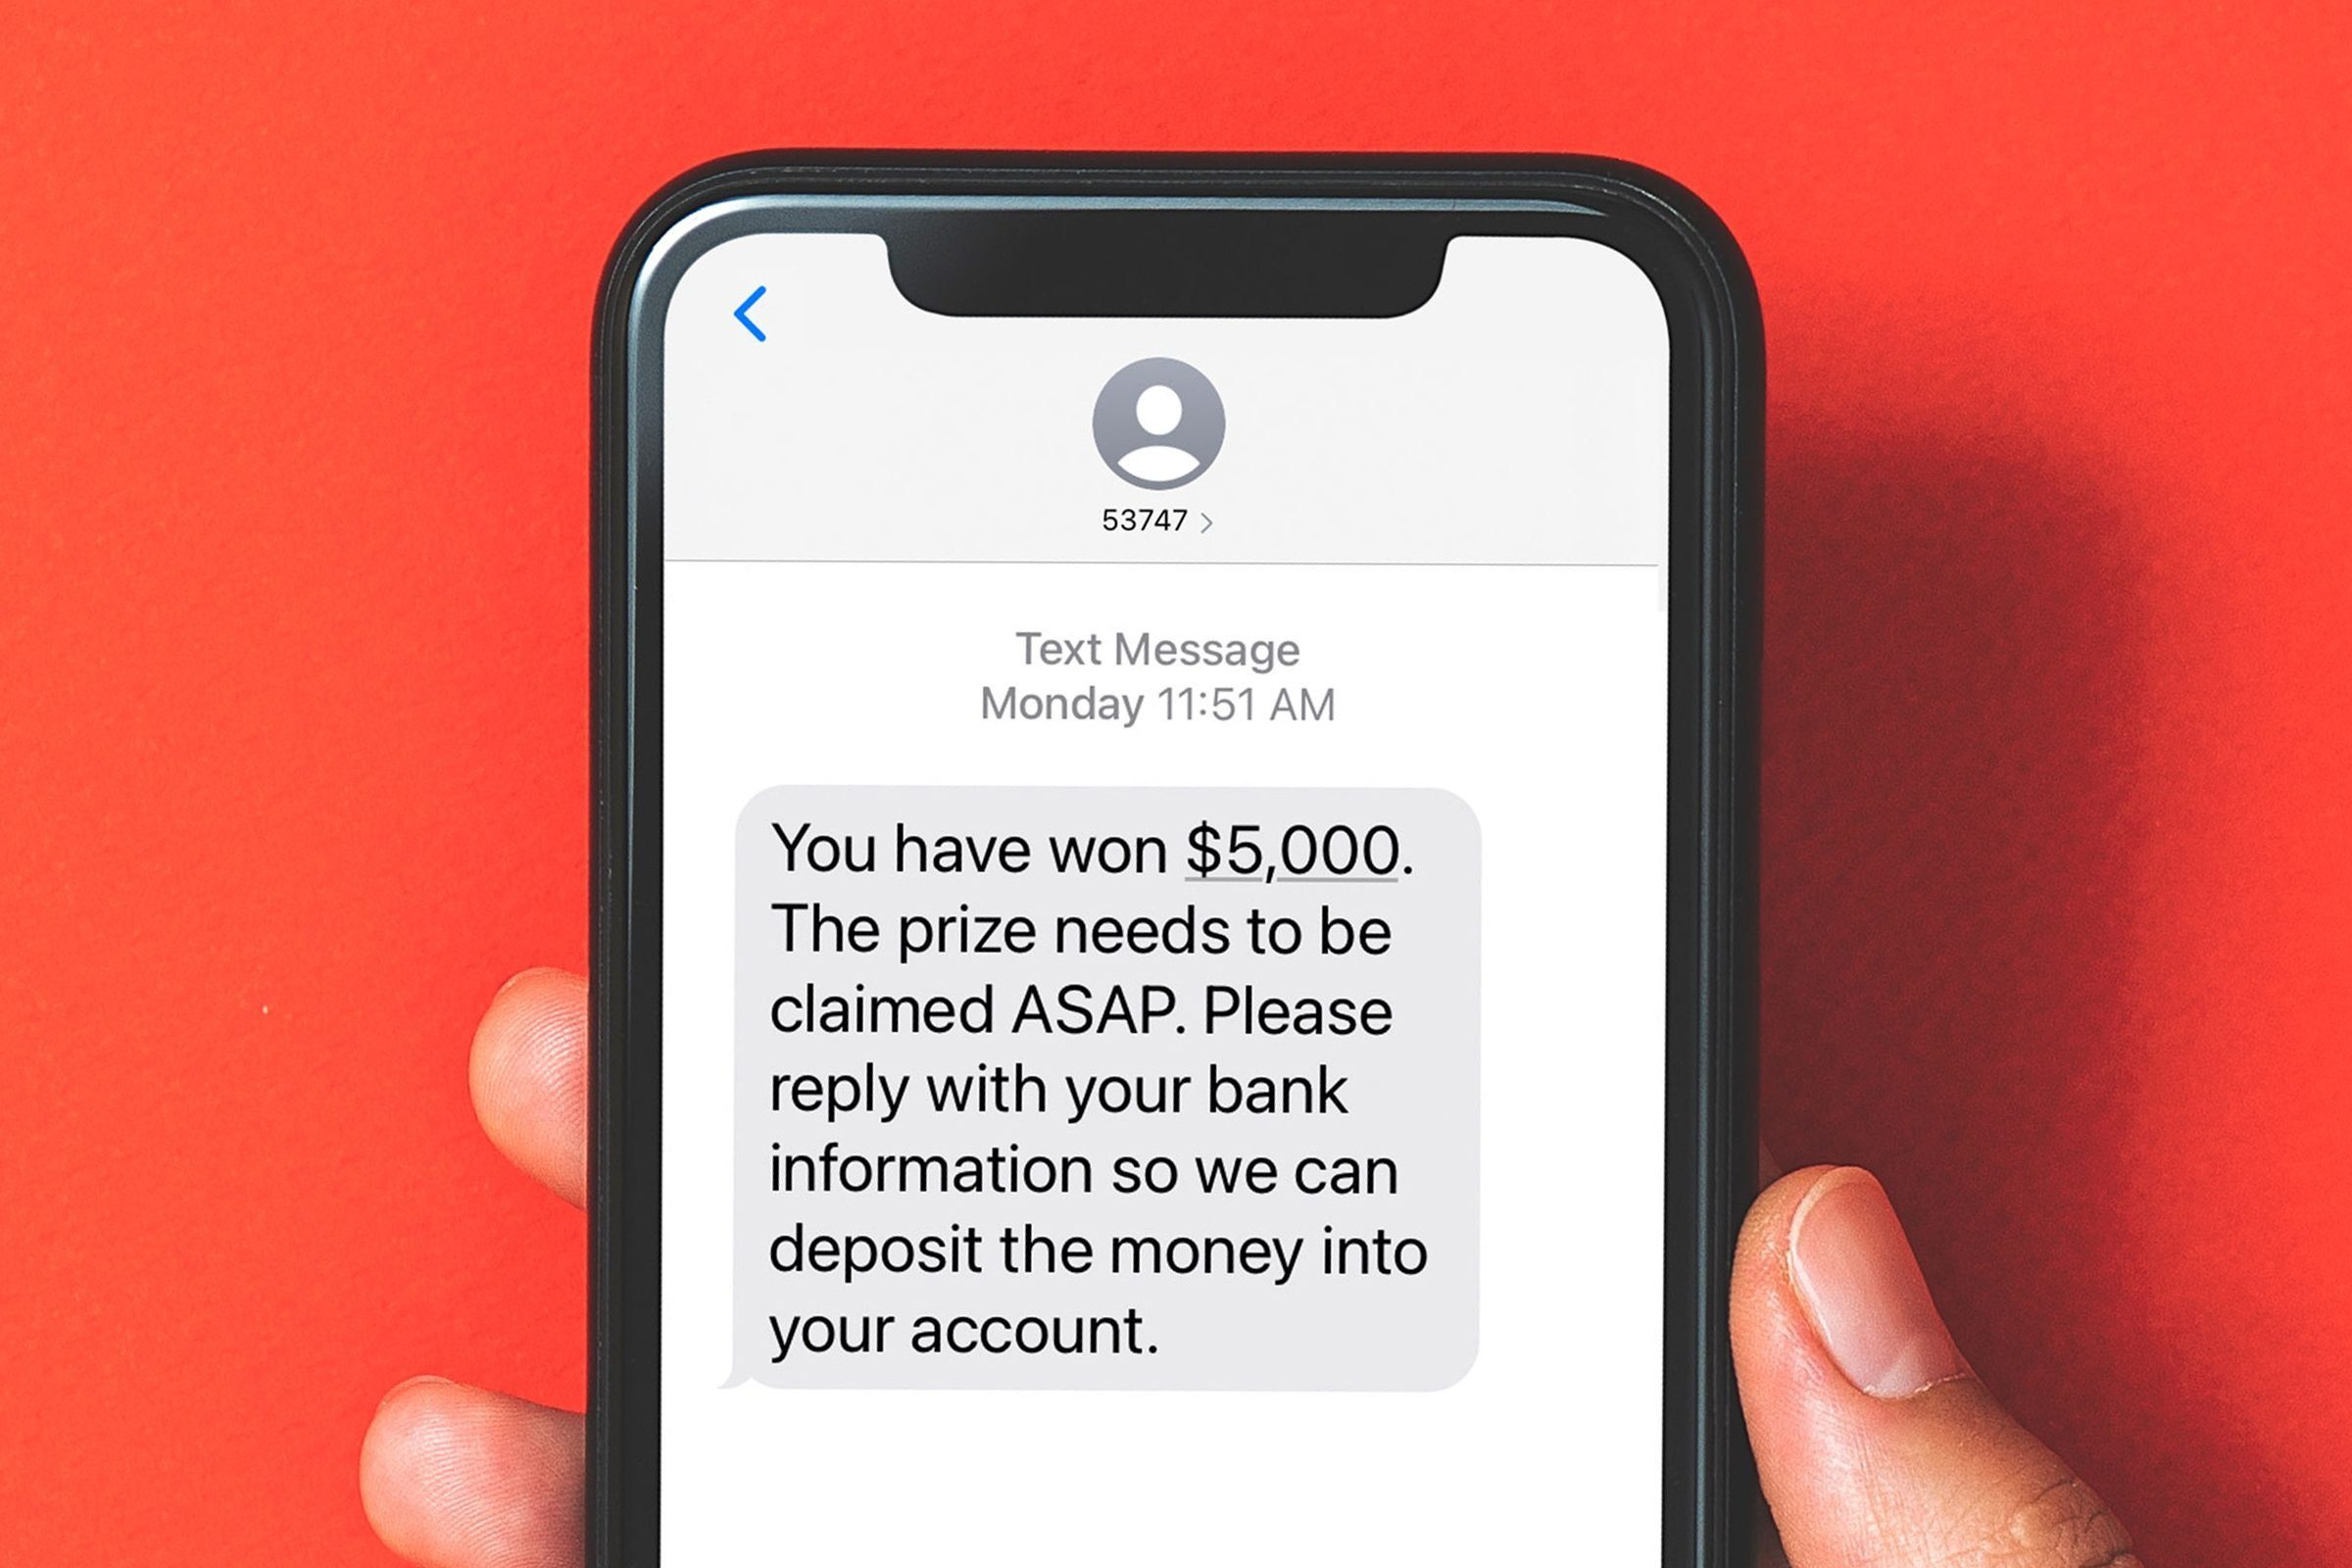 """Phone screen with a text from an unknown number: * """"You have won $5,000. The prize needs to be claimed ASAP. Please reply with your bank information so we can deposit the money into your account."""""""